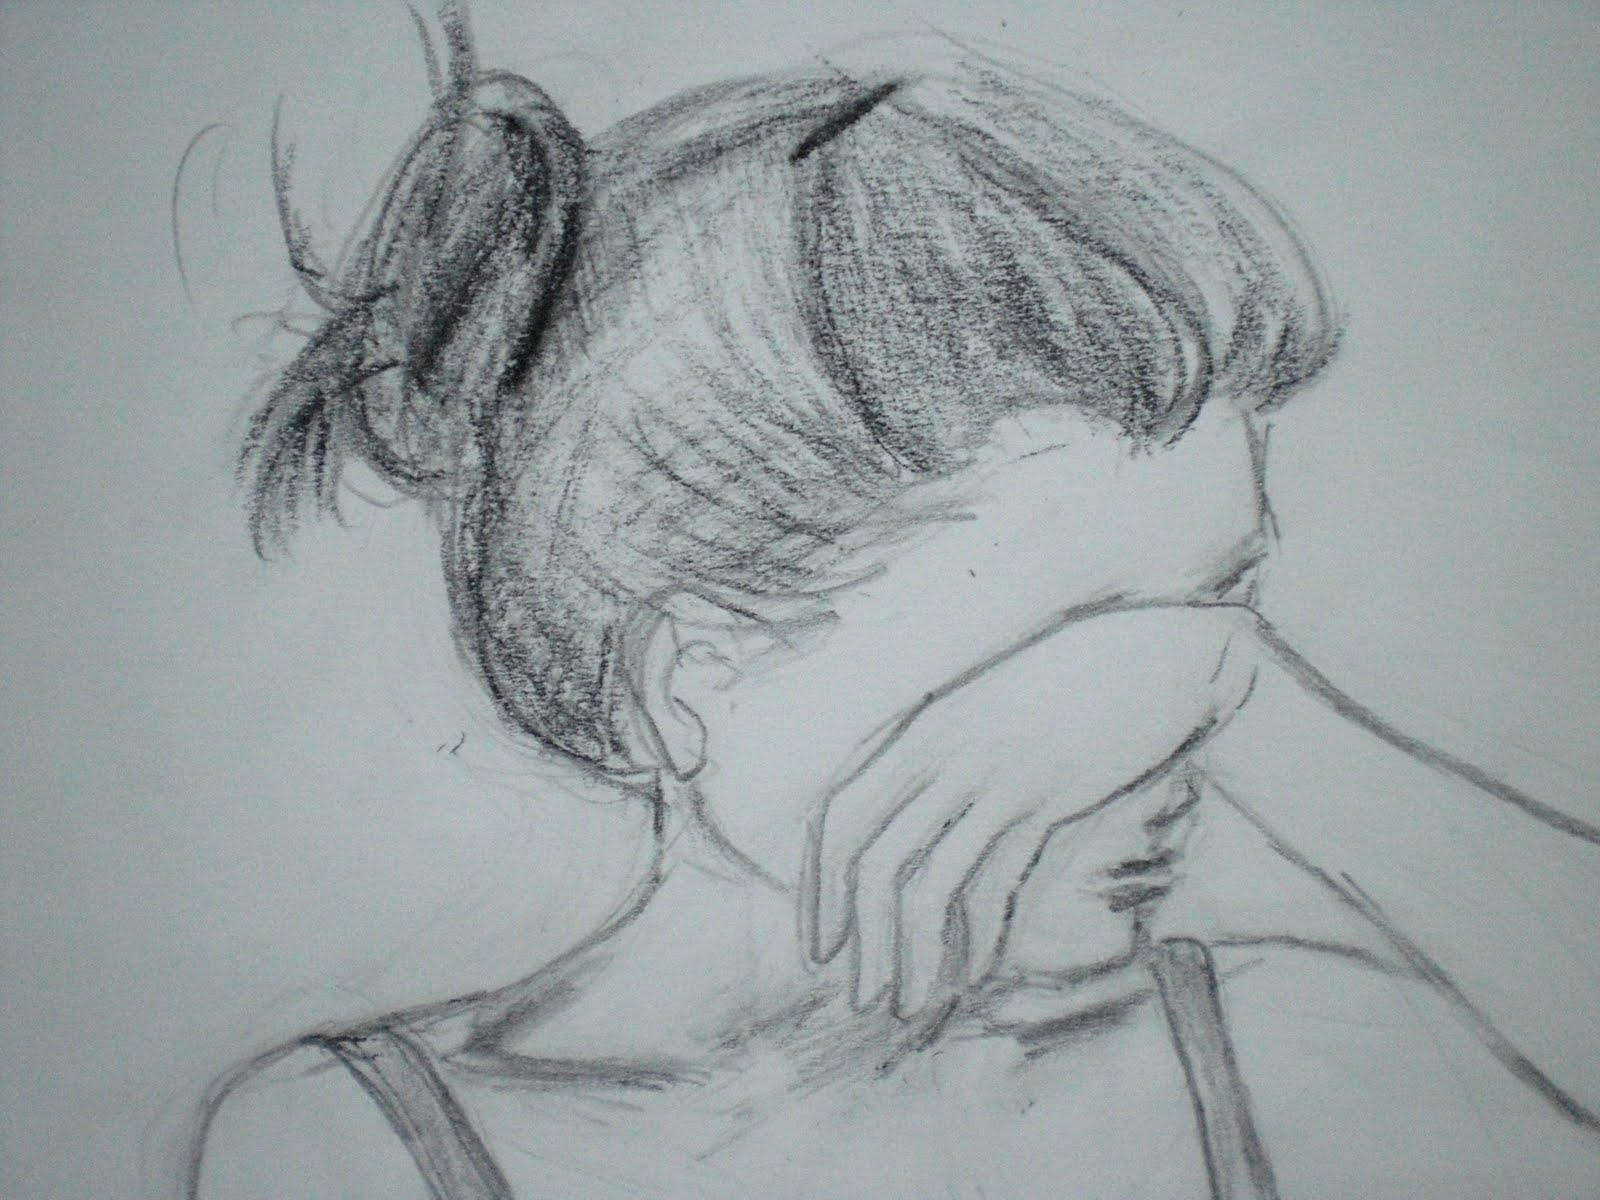 1600x1200 Drawn Sadness Depression - Sad Girl Sketch